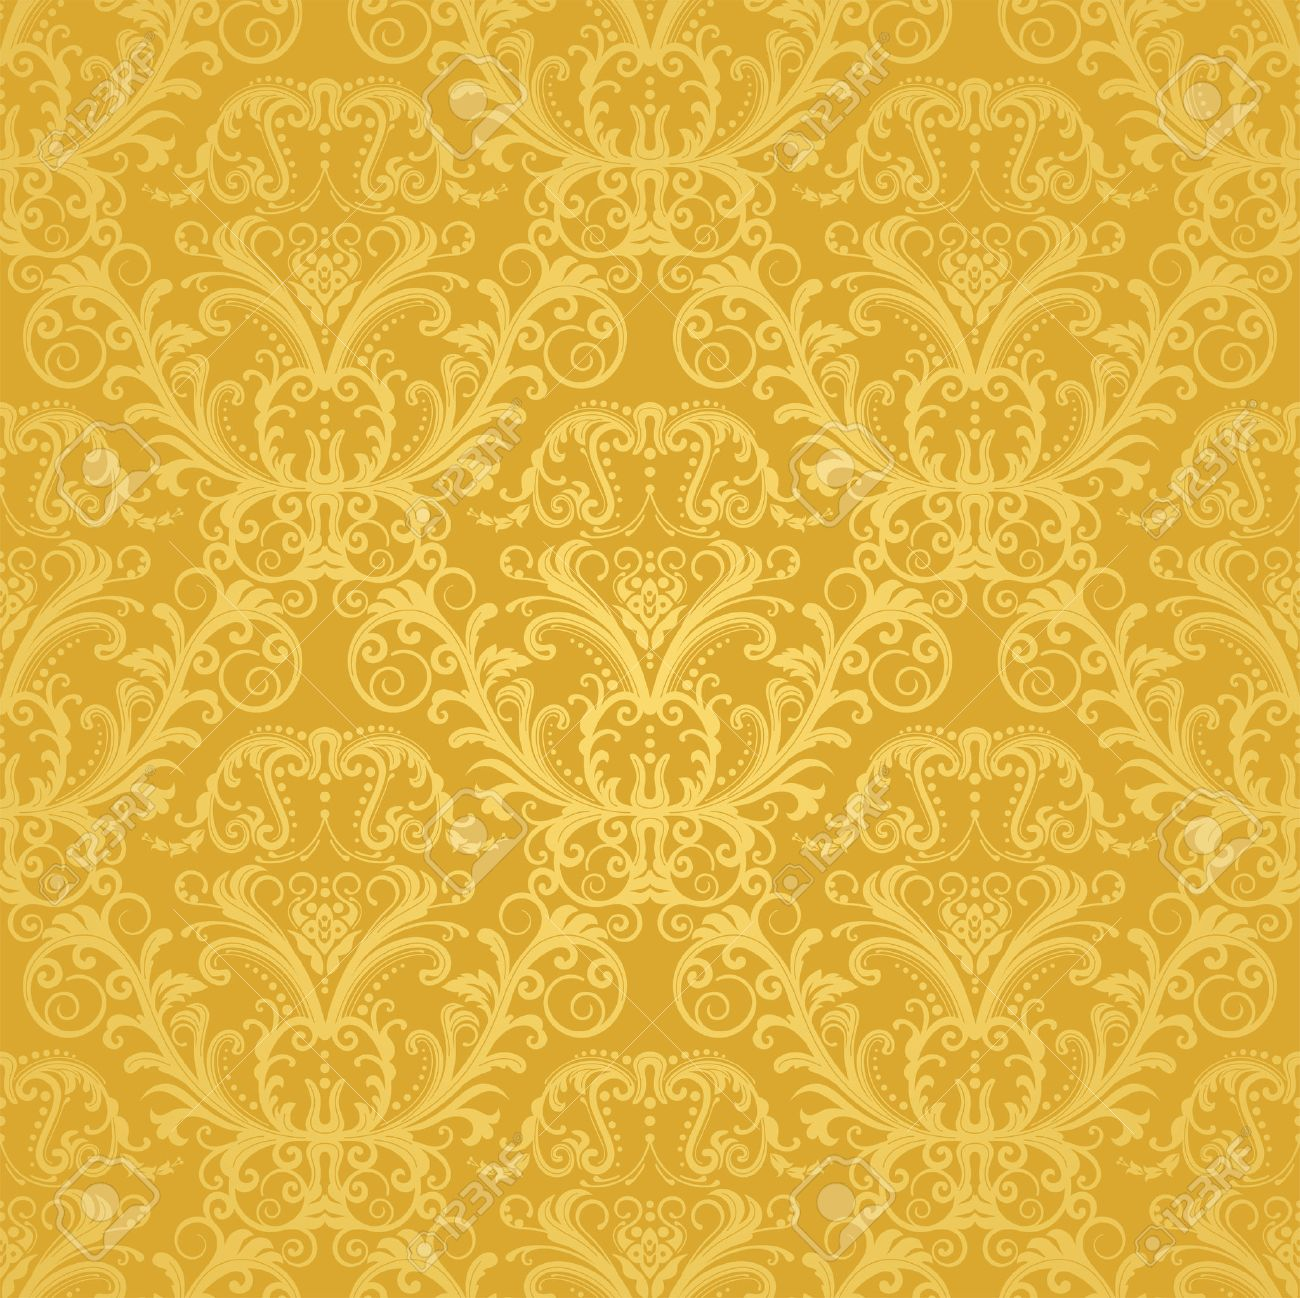 Luxury Seamless Golden Floral Wallpaper Stock Vector